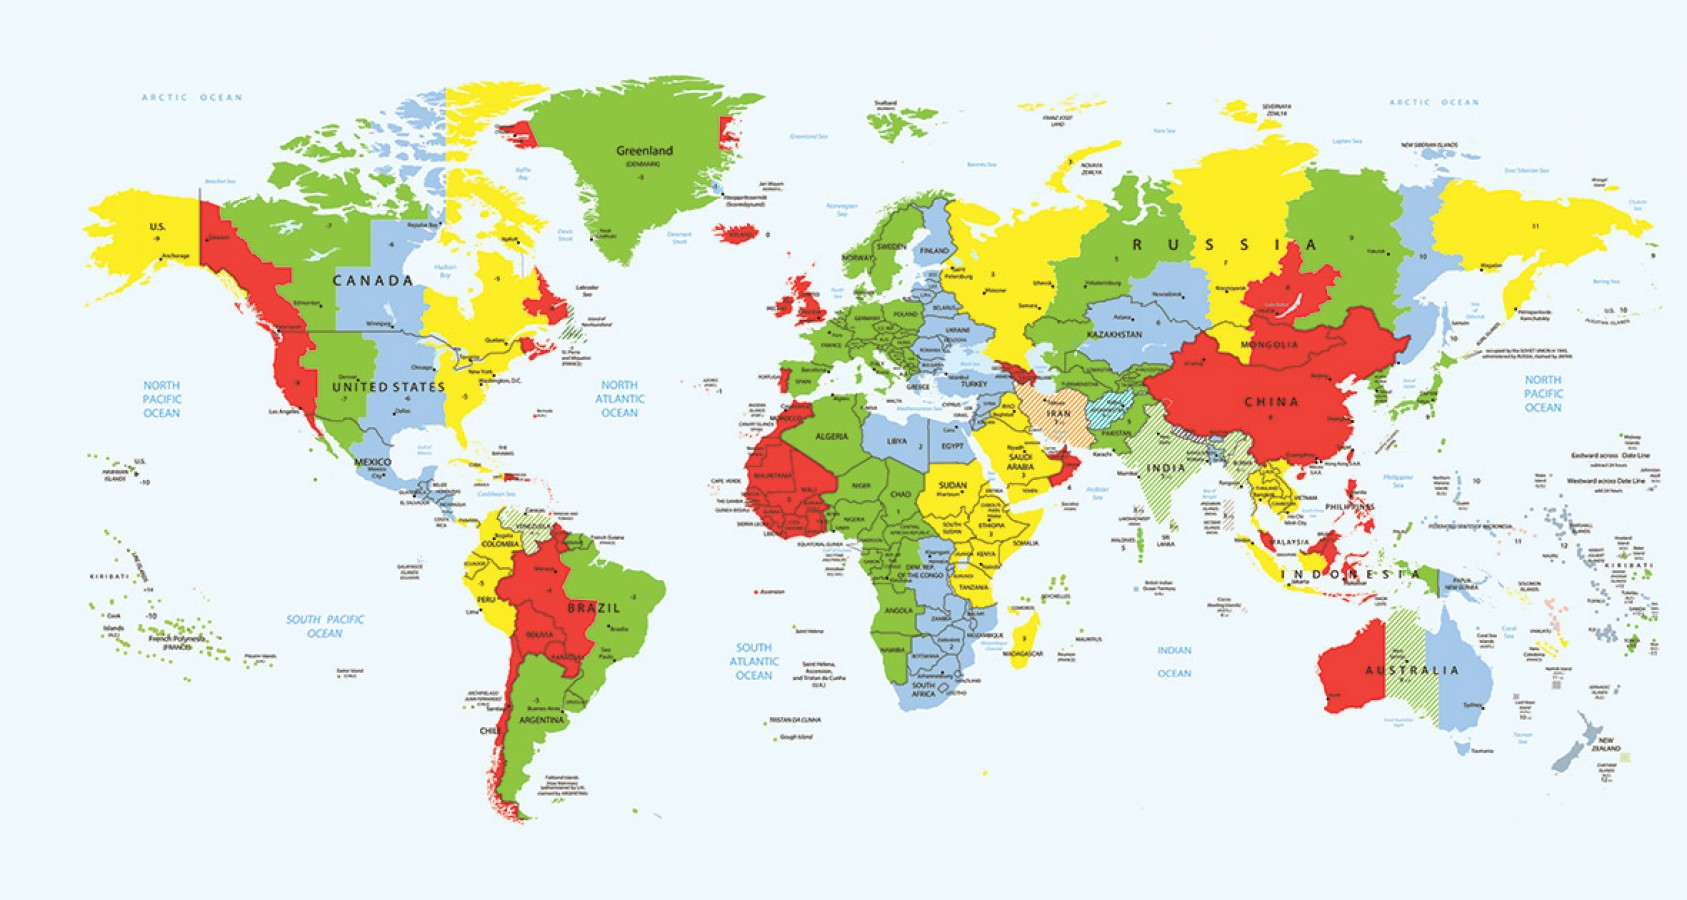 Fotomural Time Zone World Map A08-M907 Fotomural Time Zone World Map A08-M907